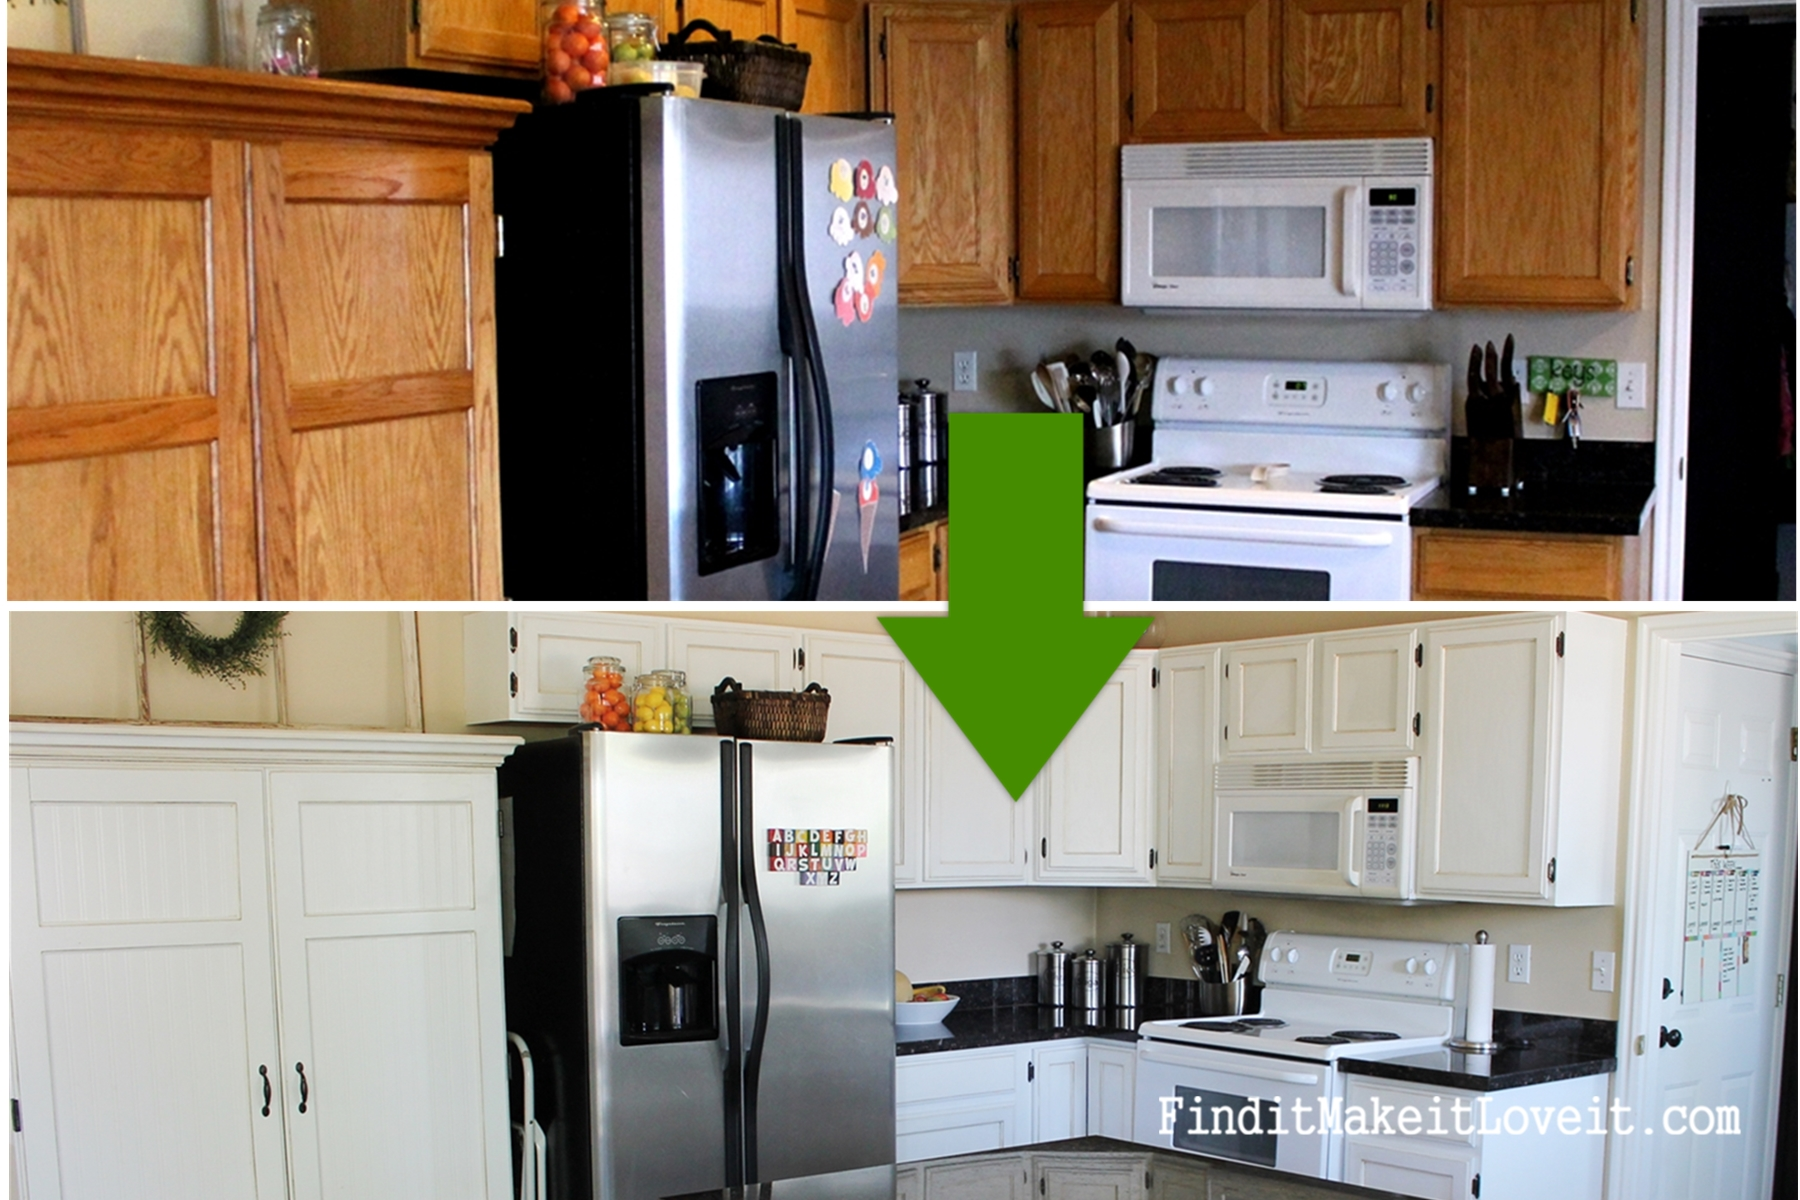 150 kitchen cabinet makeover find it make it love it diy painted kitchen cabinets reveal